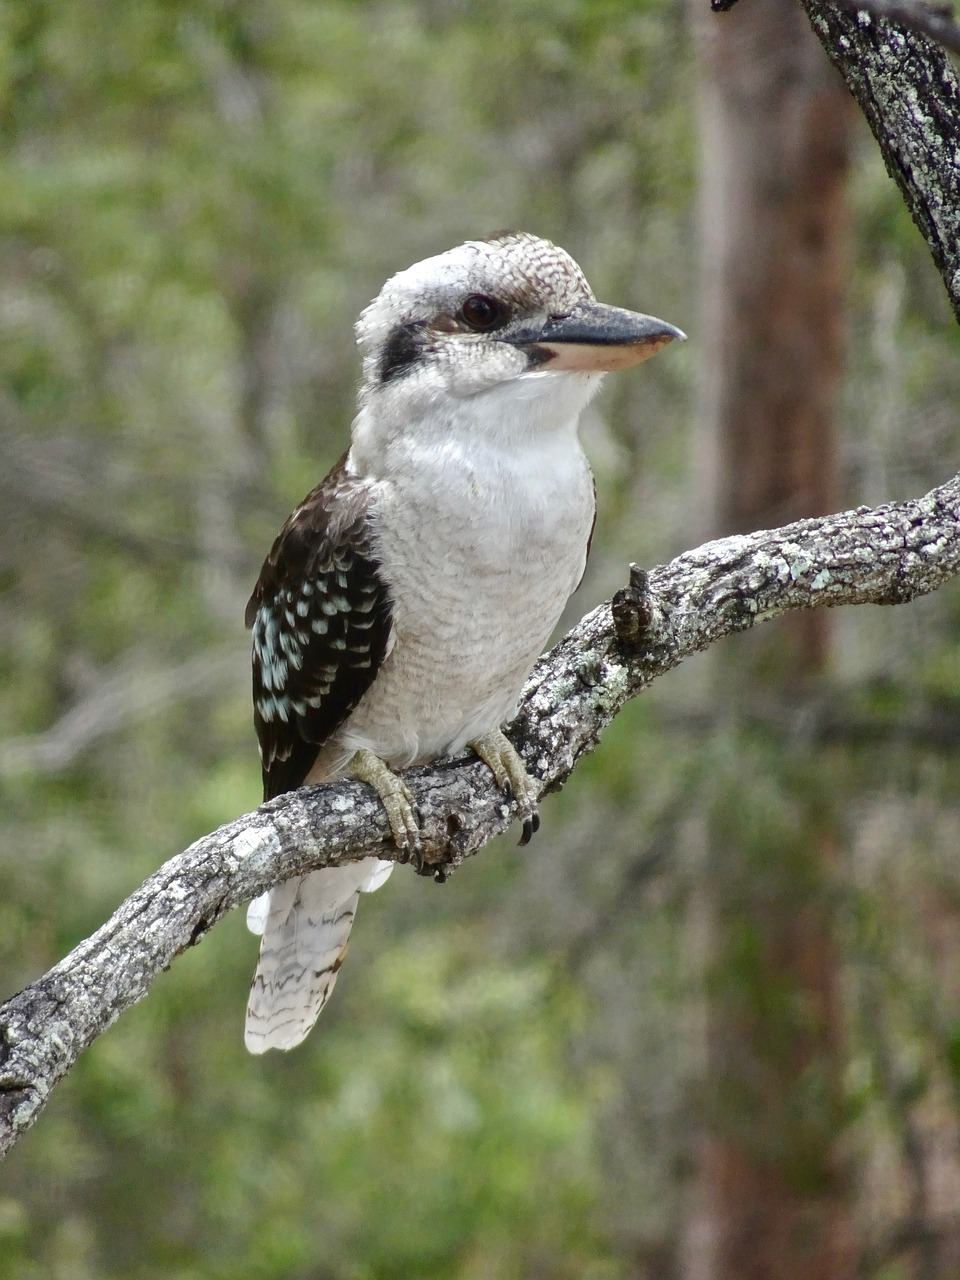 kookaburra australia kingfisher free photo